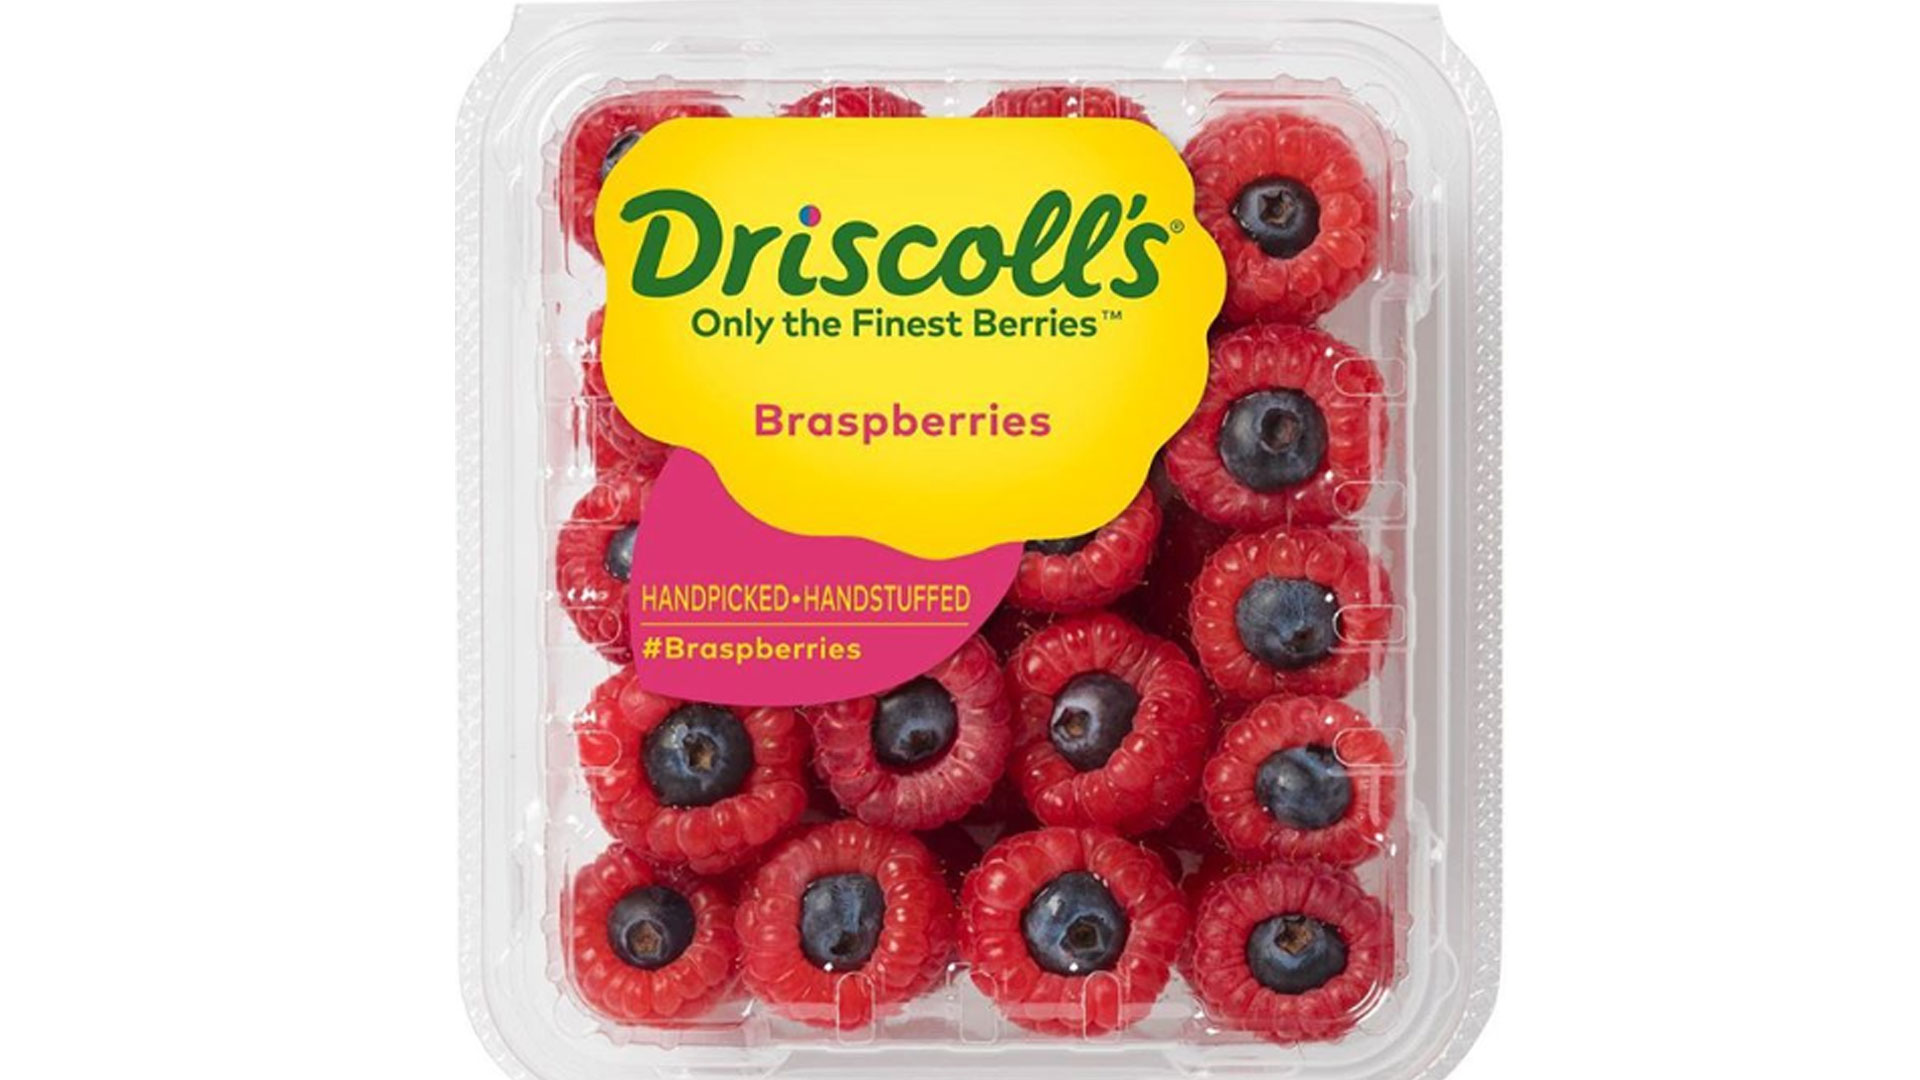 brasberries_1526123991554.jpg